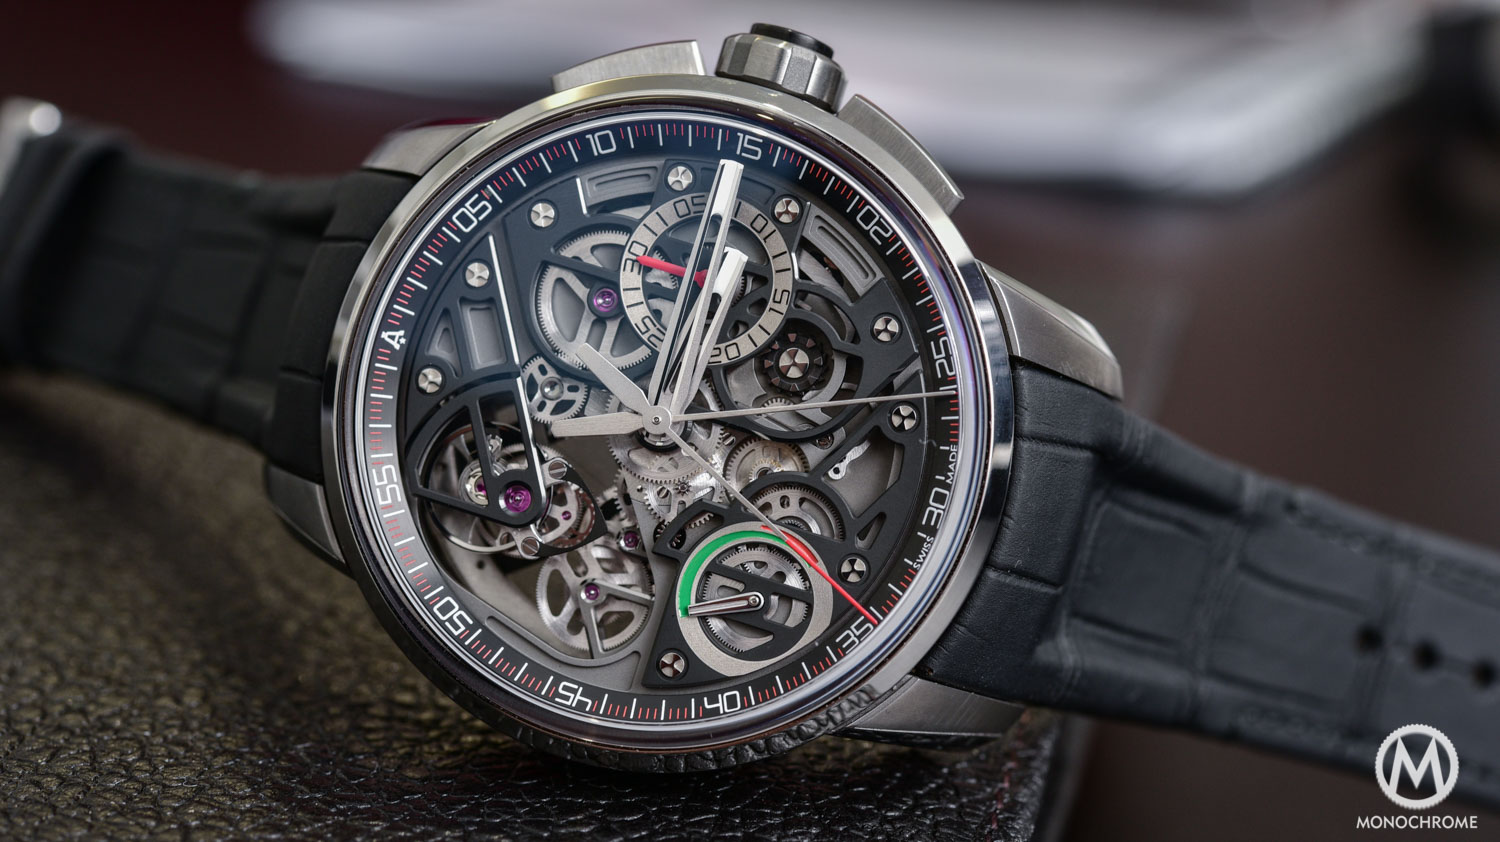 Top 5 Watches from Baselworld 2016 - Angelus U30 Rattrapante Tourbillon - Top 5 From Baselworld 2016 Frank - 2